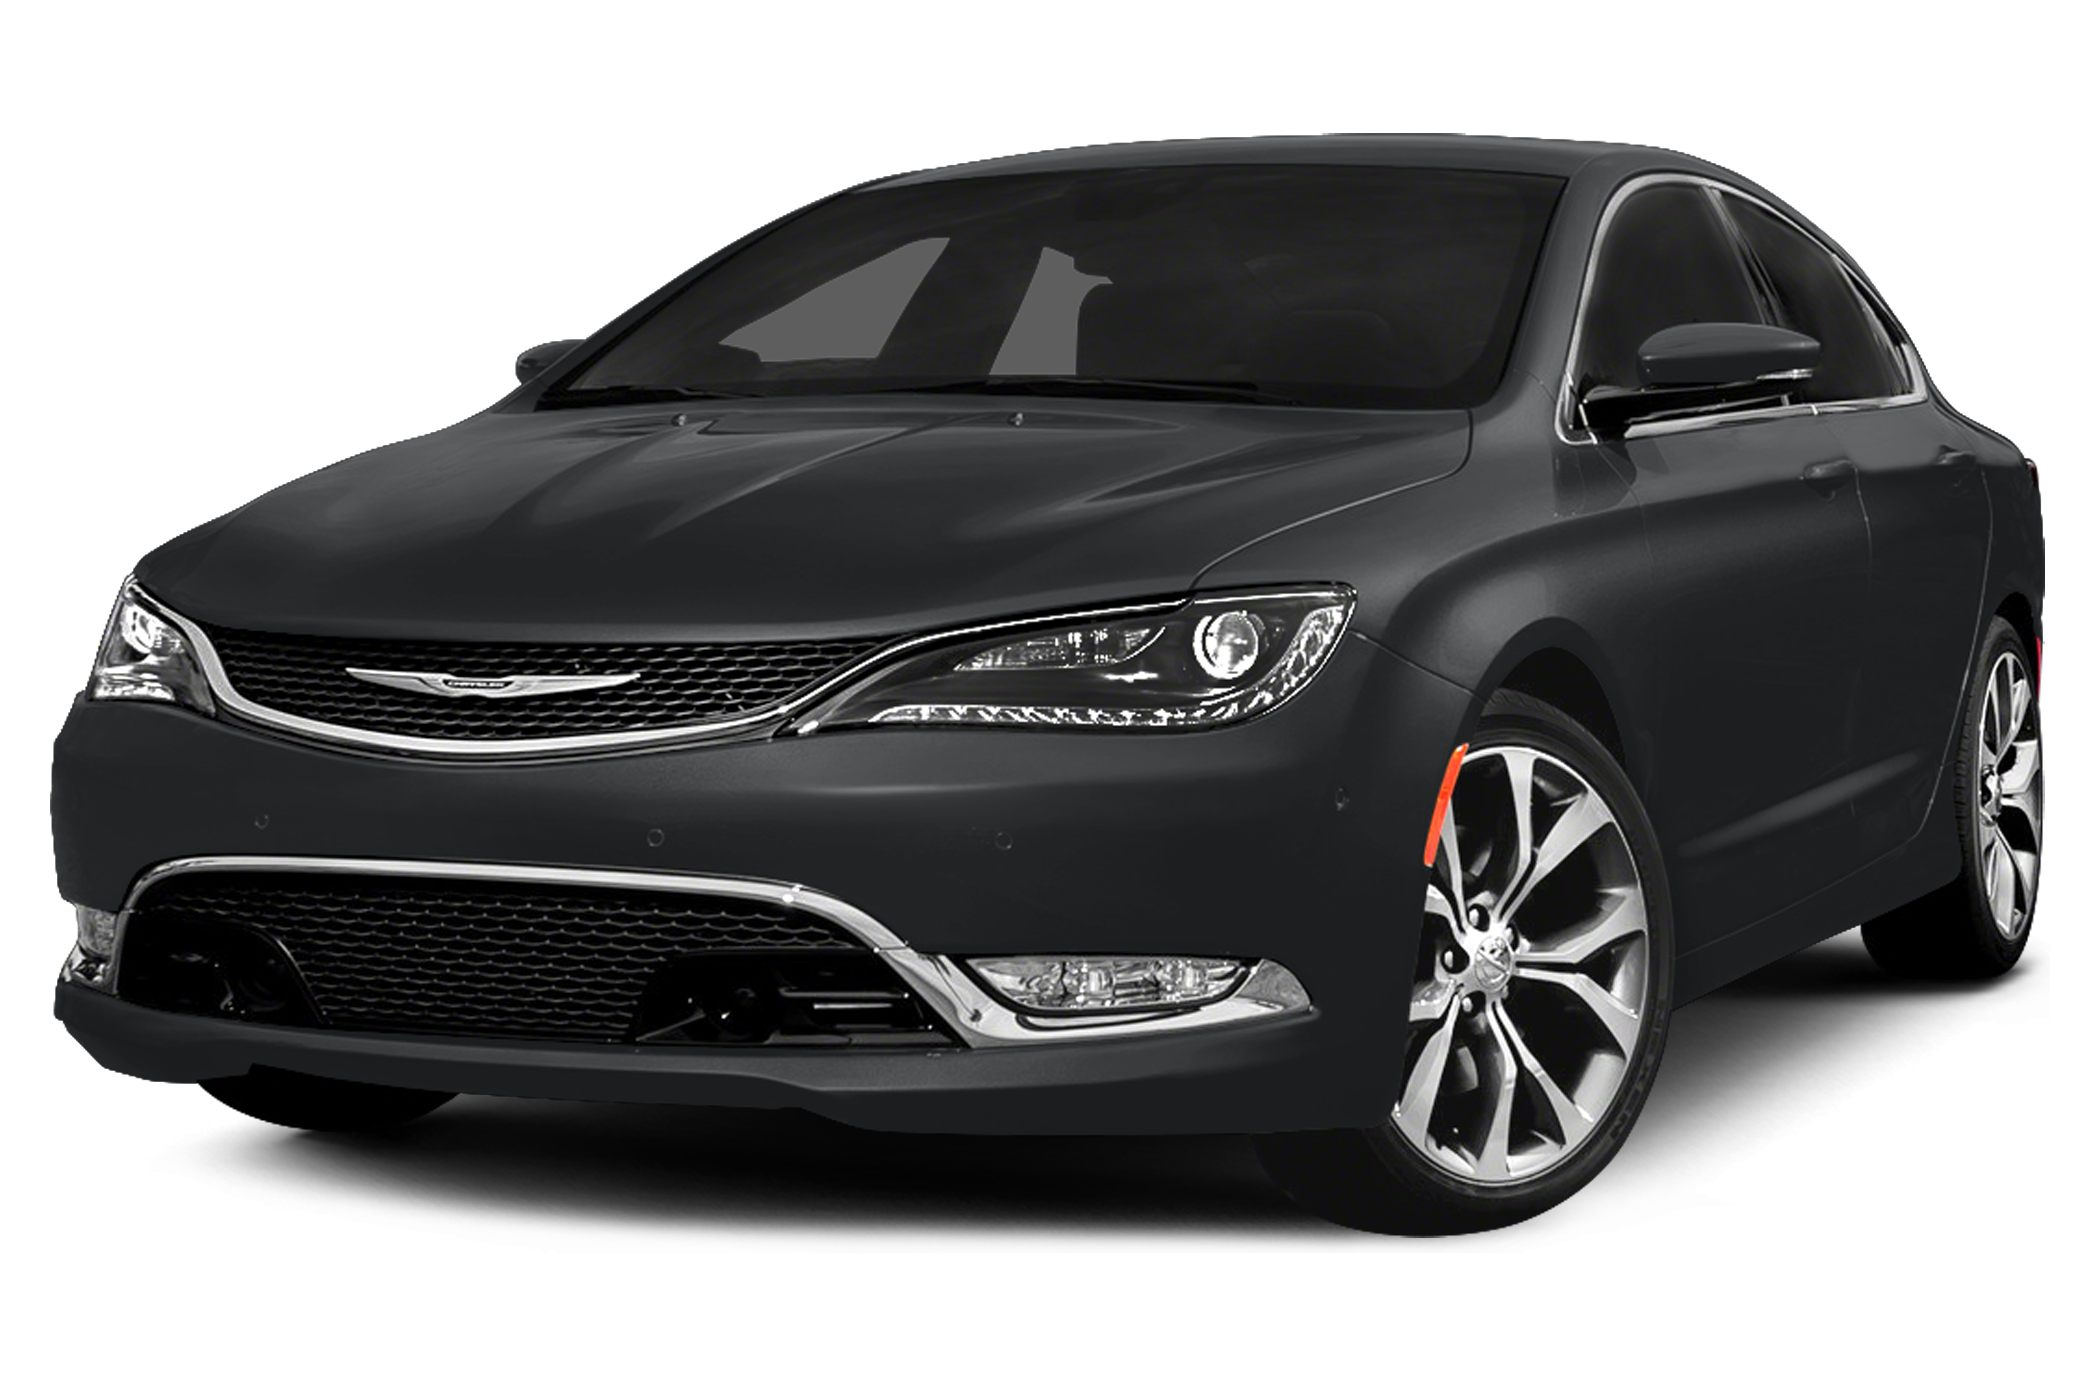 2015 Chrysler 200 Limited Sedan for sale in Rochester for $23,837 with 1 miles.